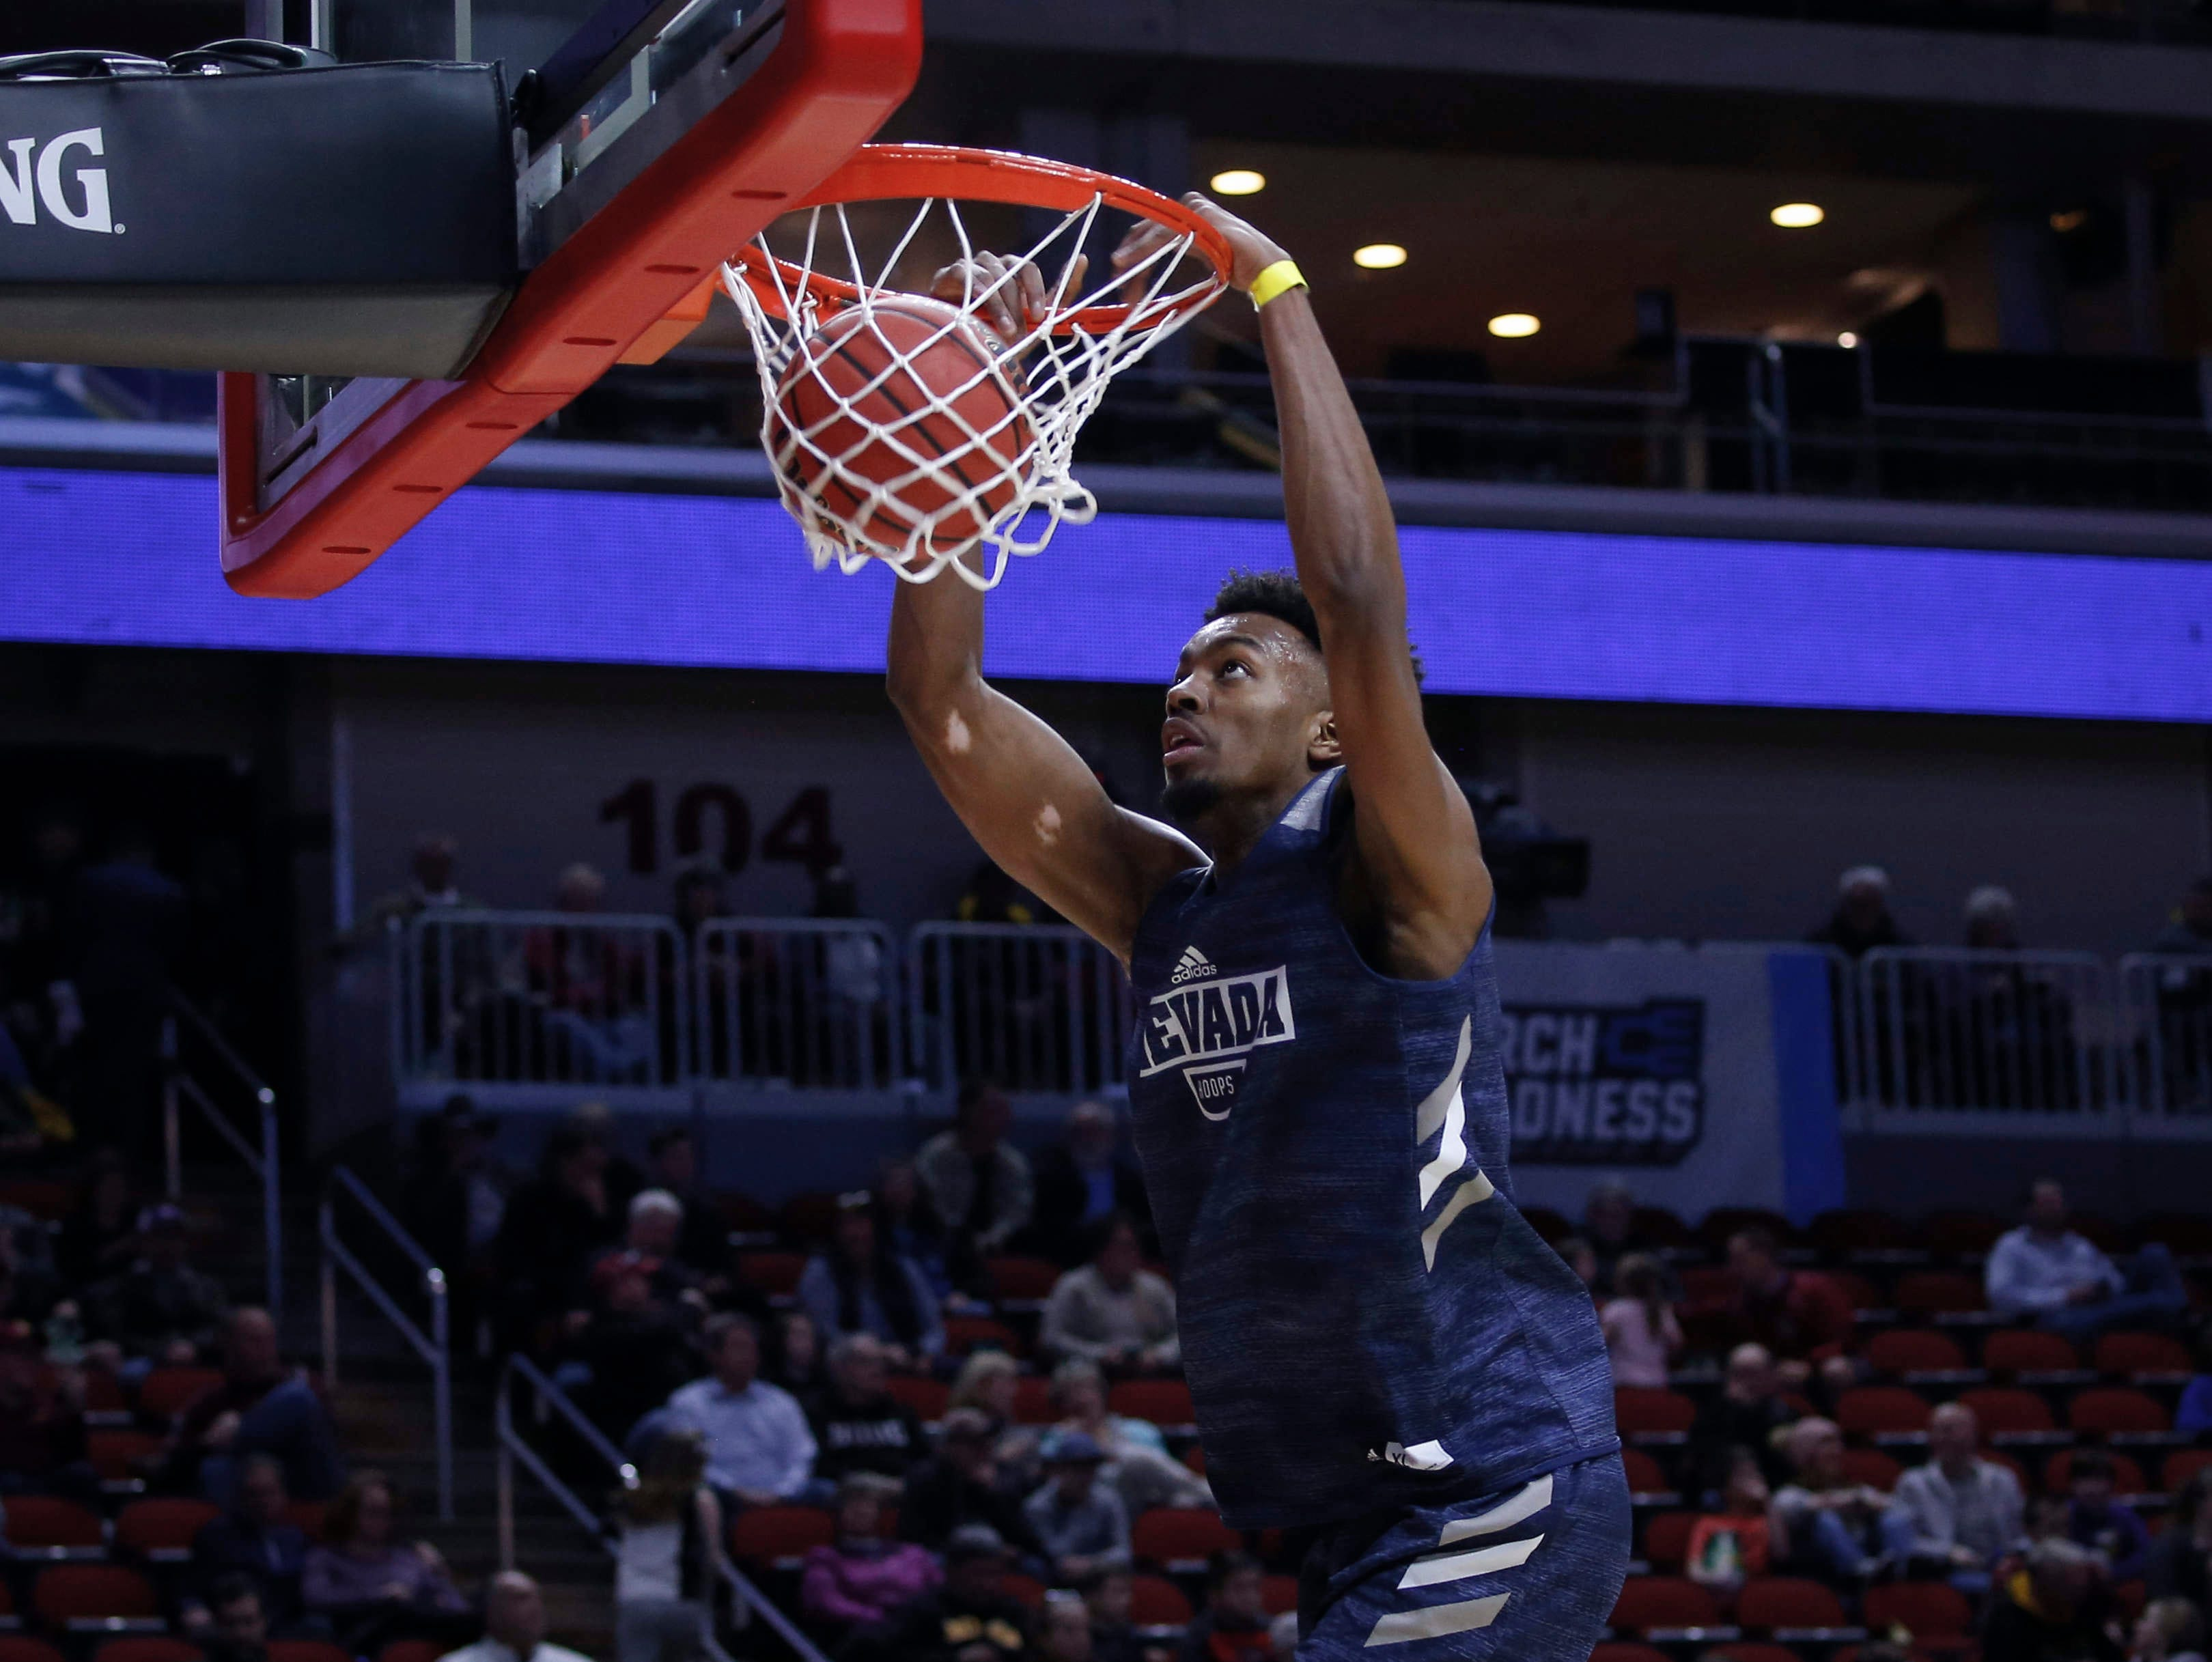 Nevada freshman Jordan Brown dunks the ball during open practice on Wednesday, March 20, 2019, at Wells Fargo Arena in Des Moines, Iowa.